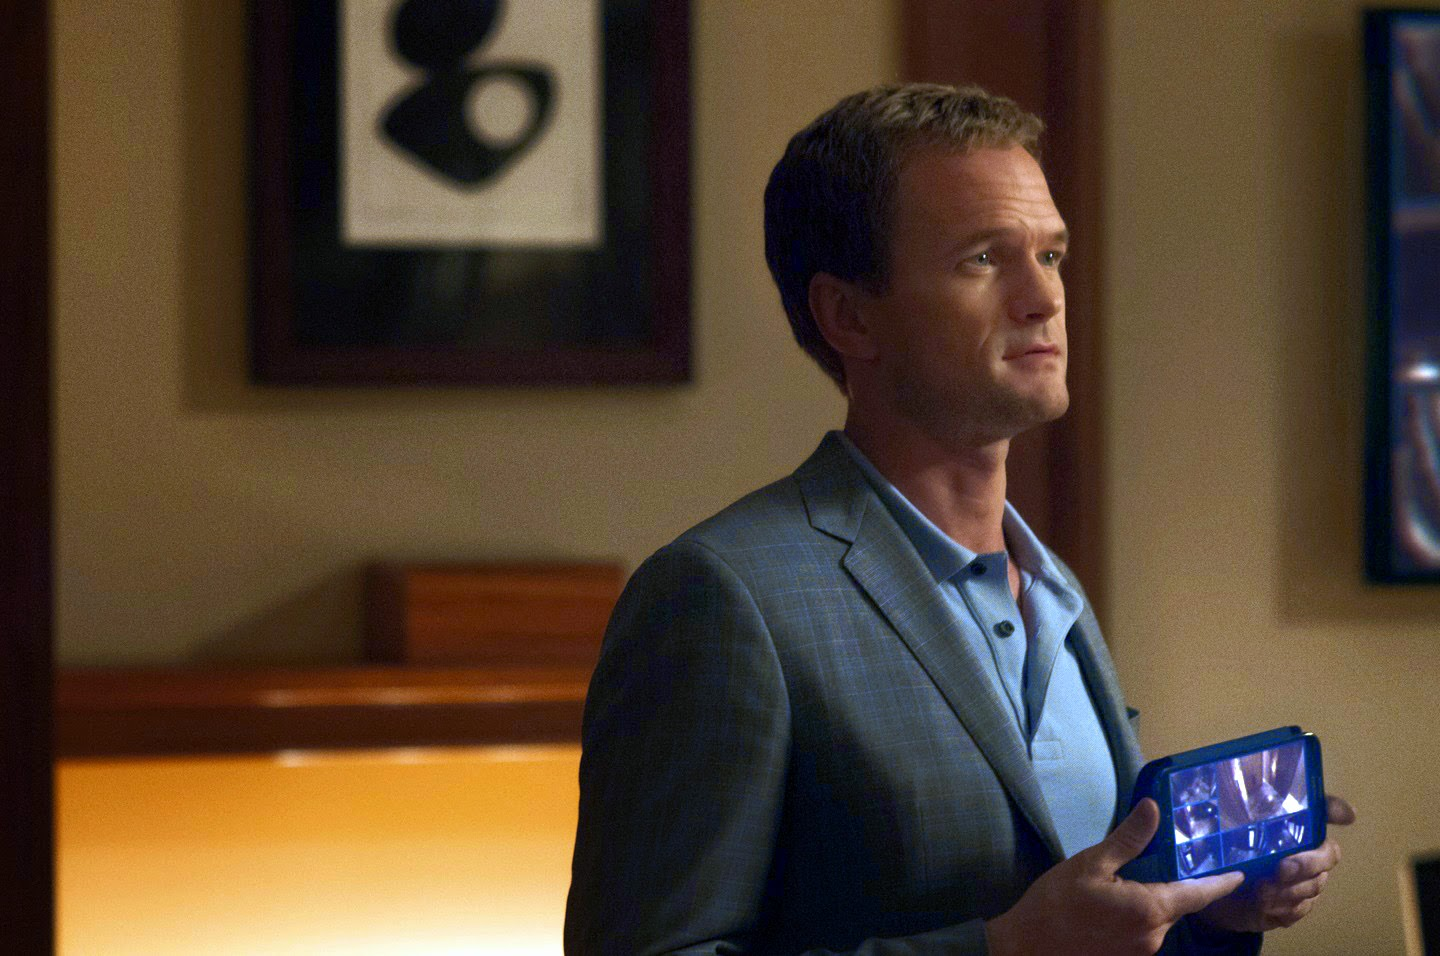 Neil Patrick Harris as Desi Collings